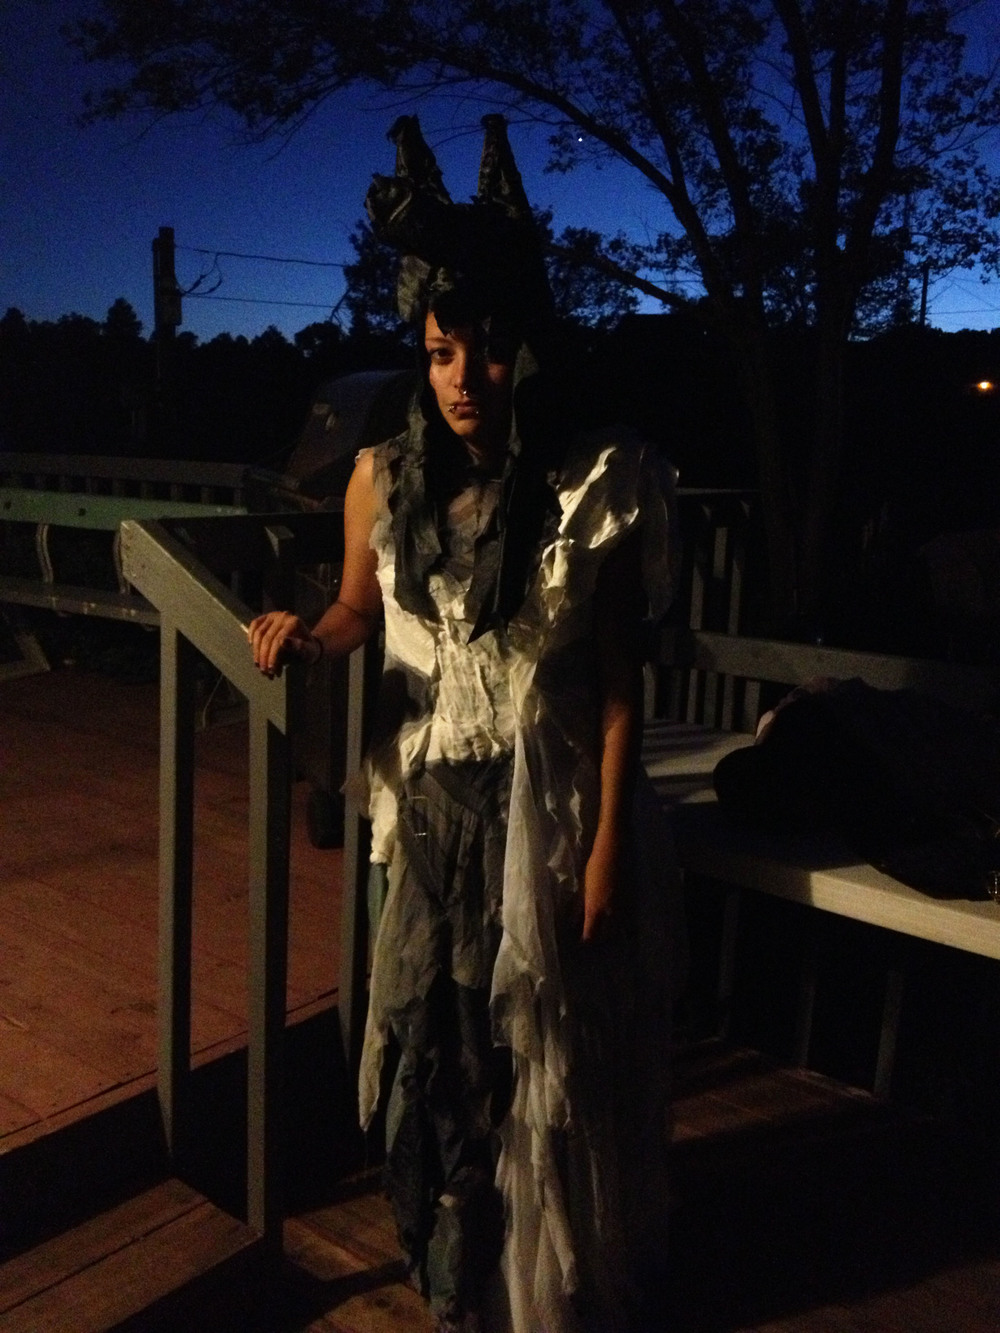 Felicity brown fashion black silk wolf head white silk dress native american  arizona trip .jpg